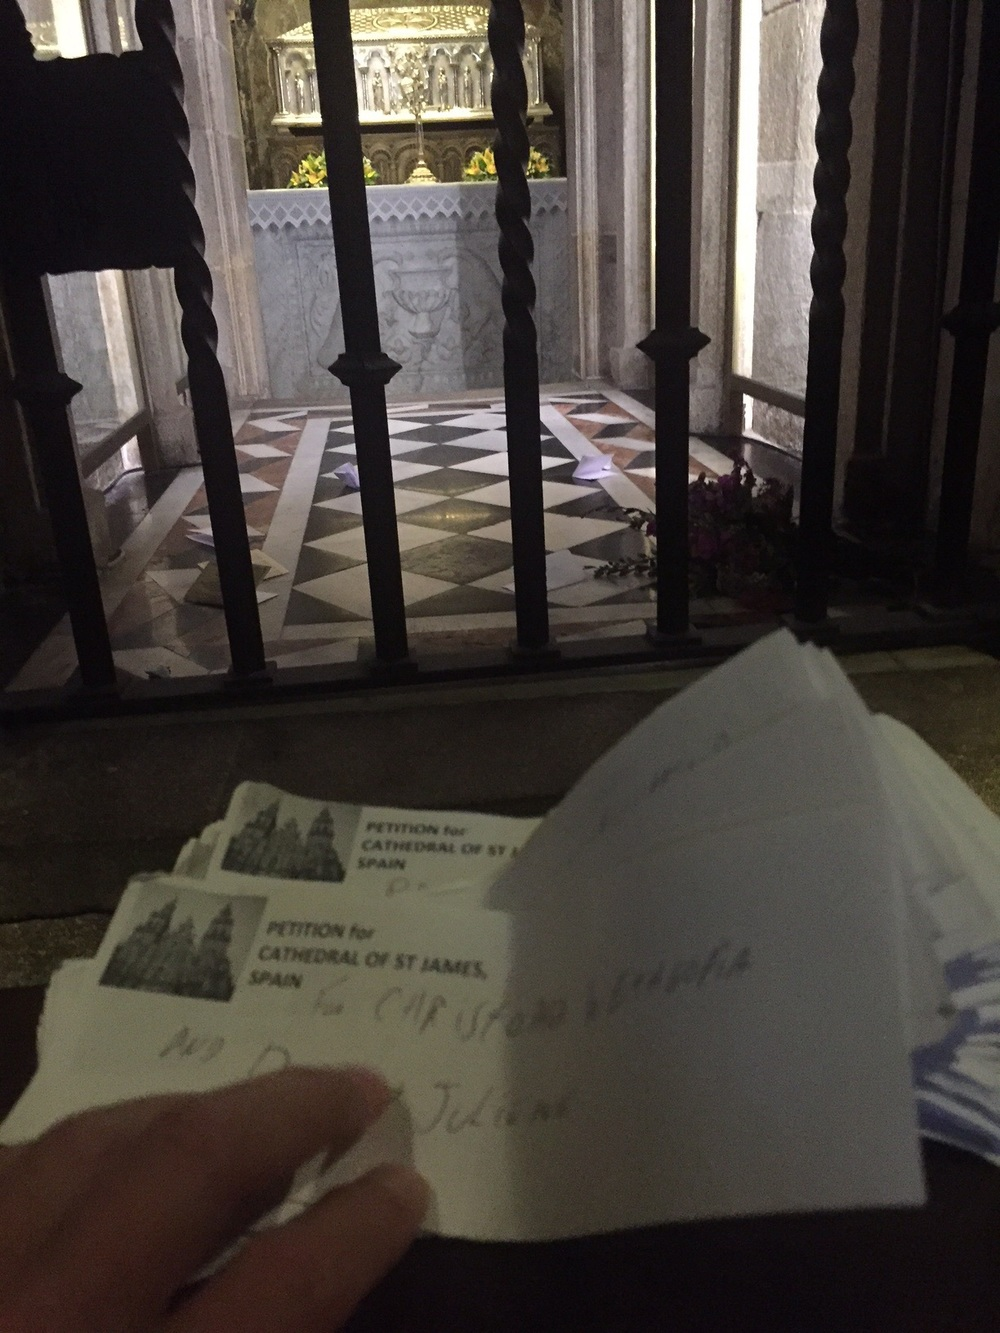 Petitions for St James